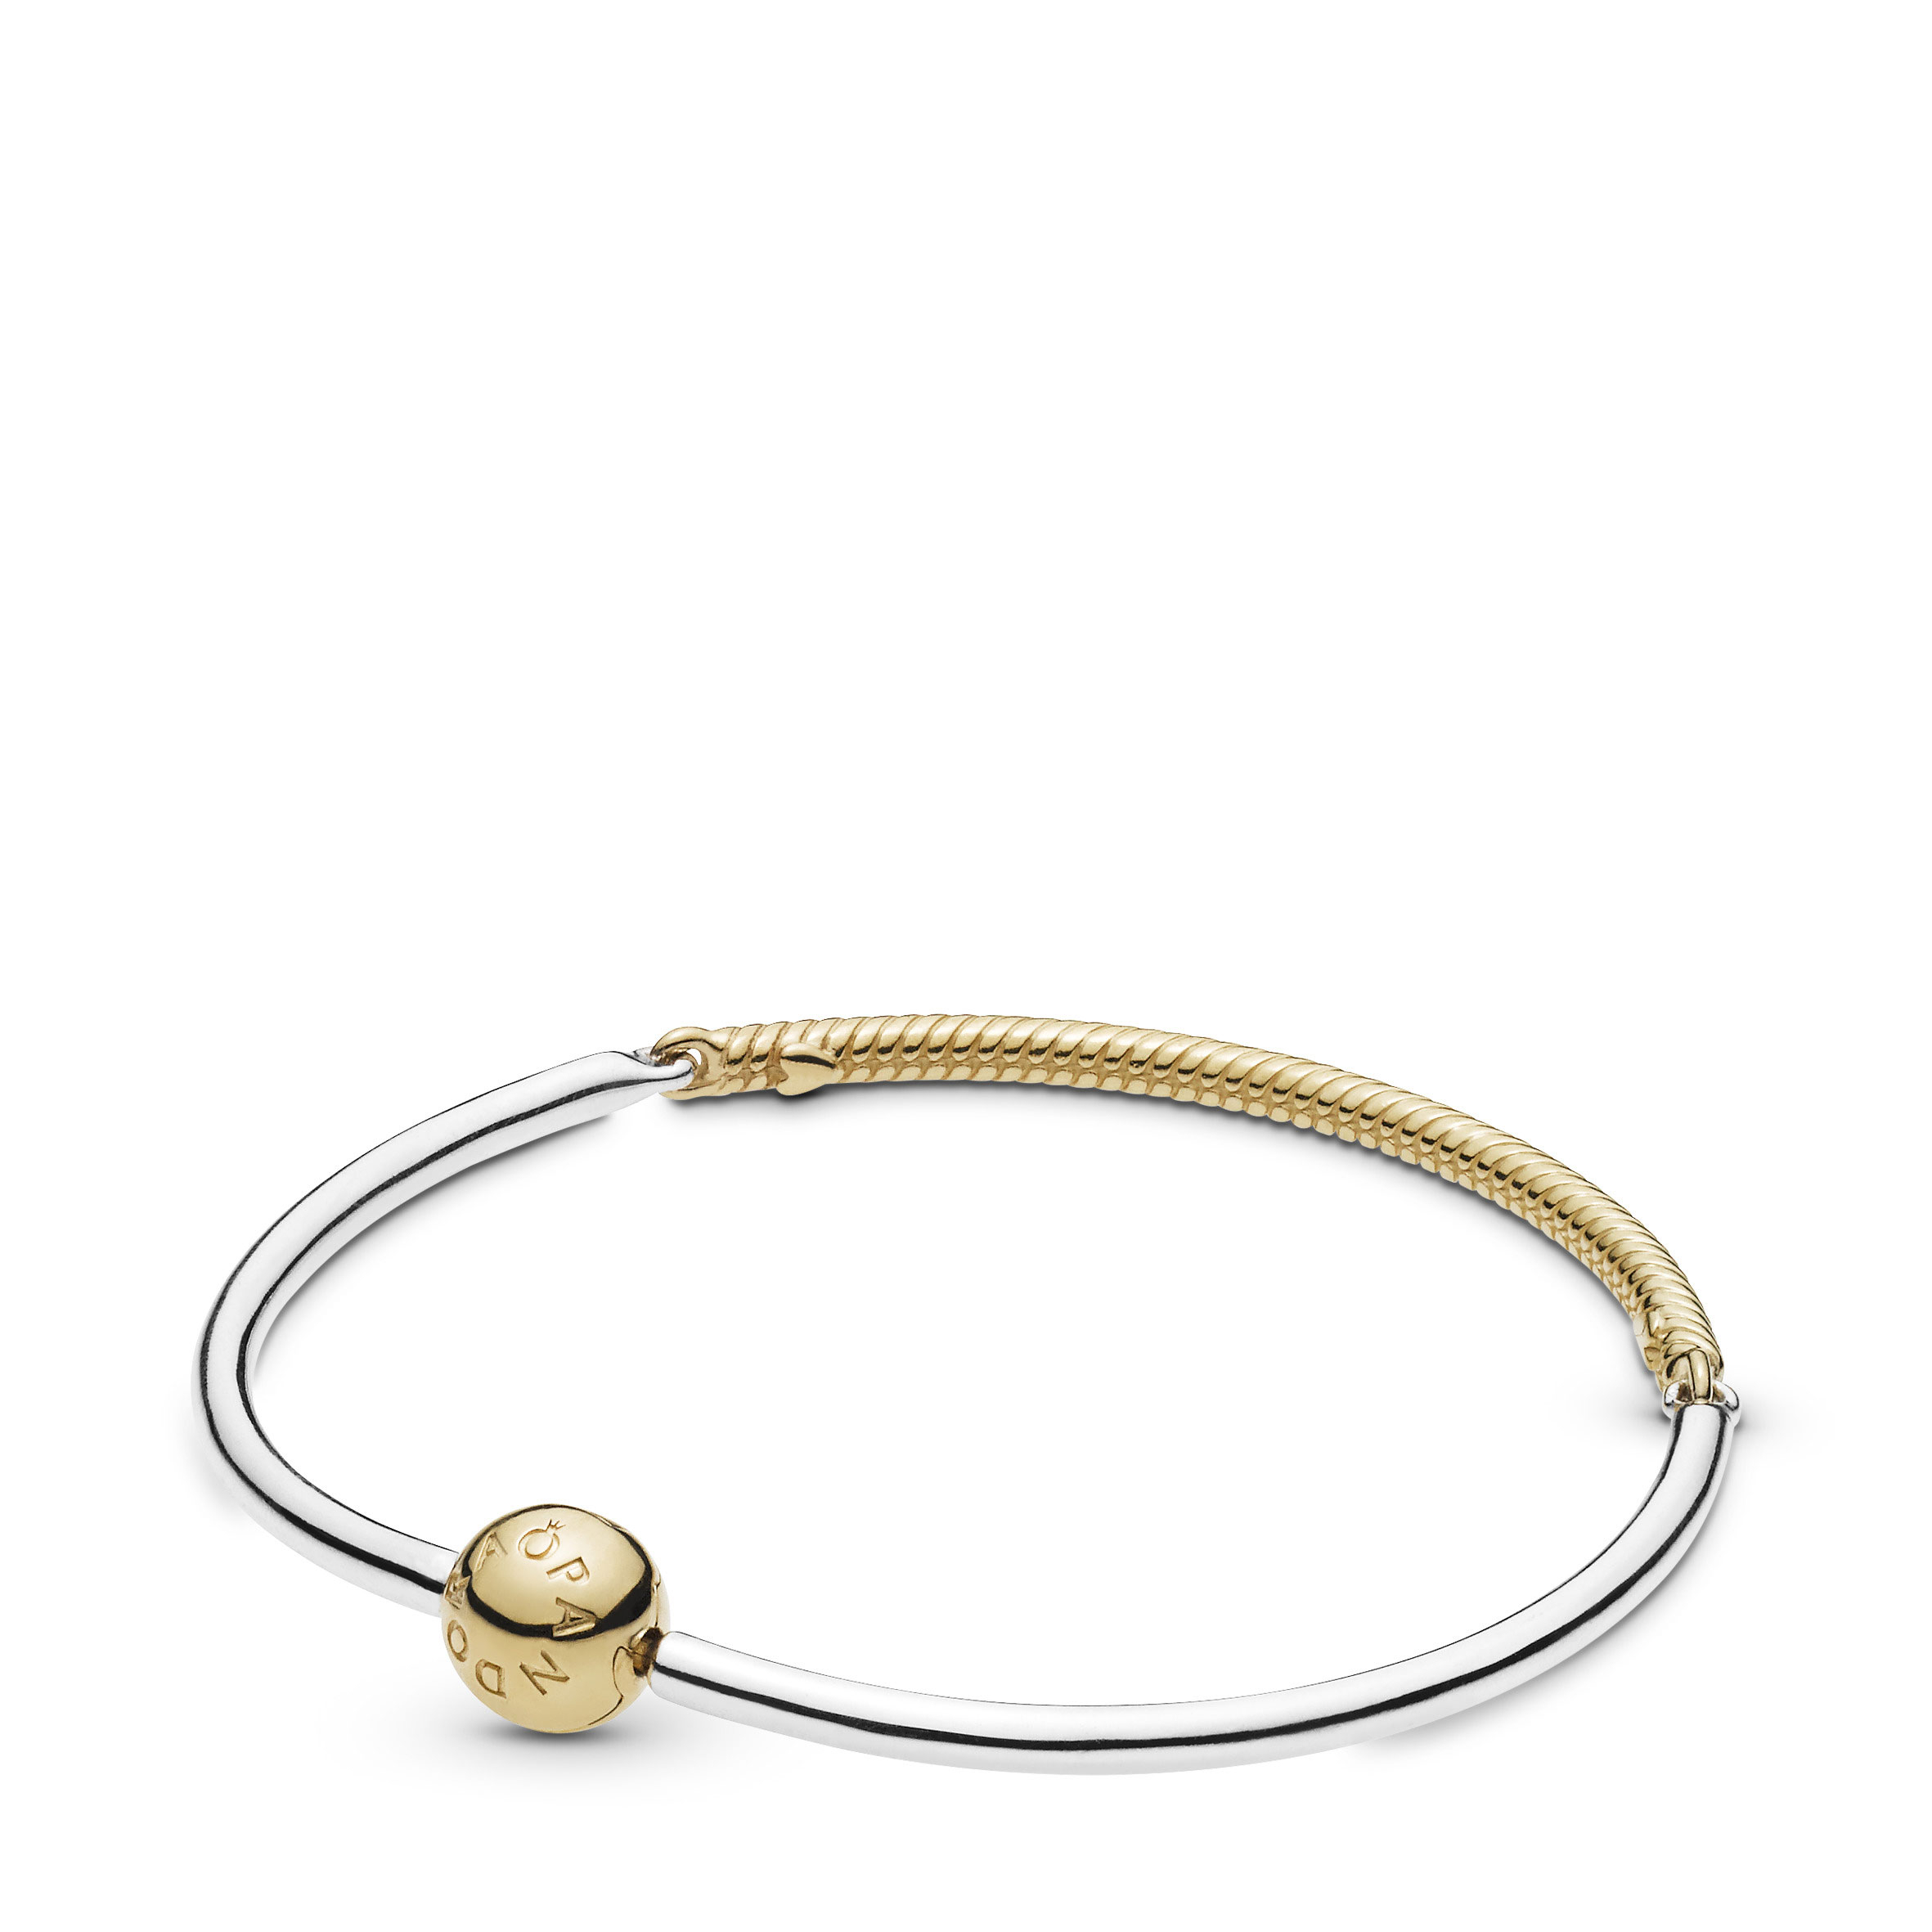 Pandora Moments Three Link Pandora Shine™ Bangle Bracelet Intended For 2019 Pandora Moments Snake Chain Necklaces (Gallery 24 of 25)